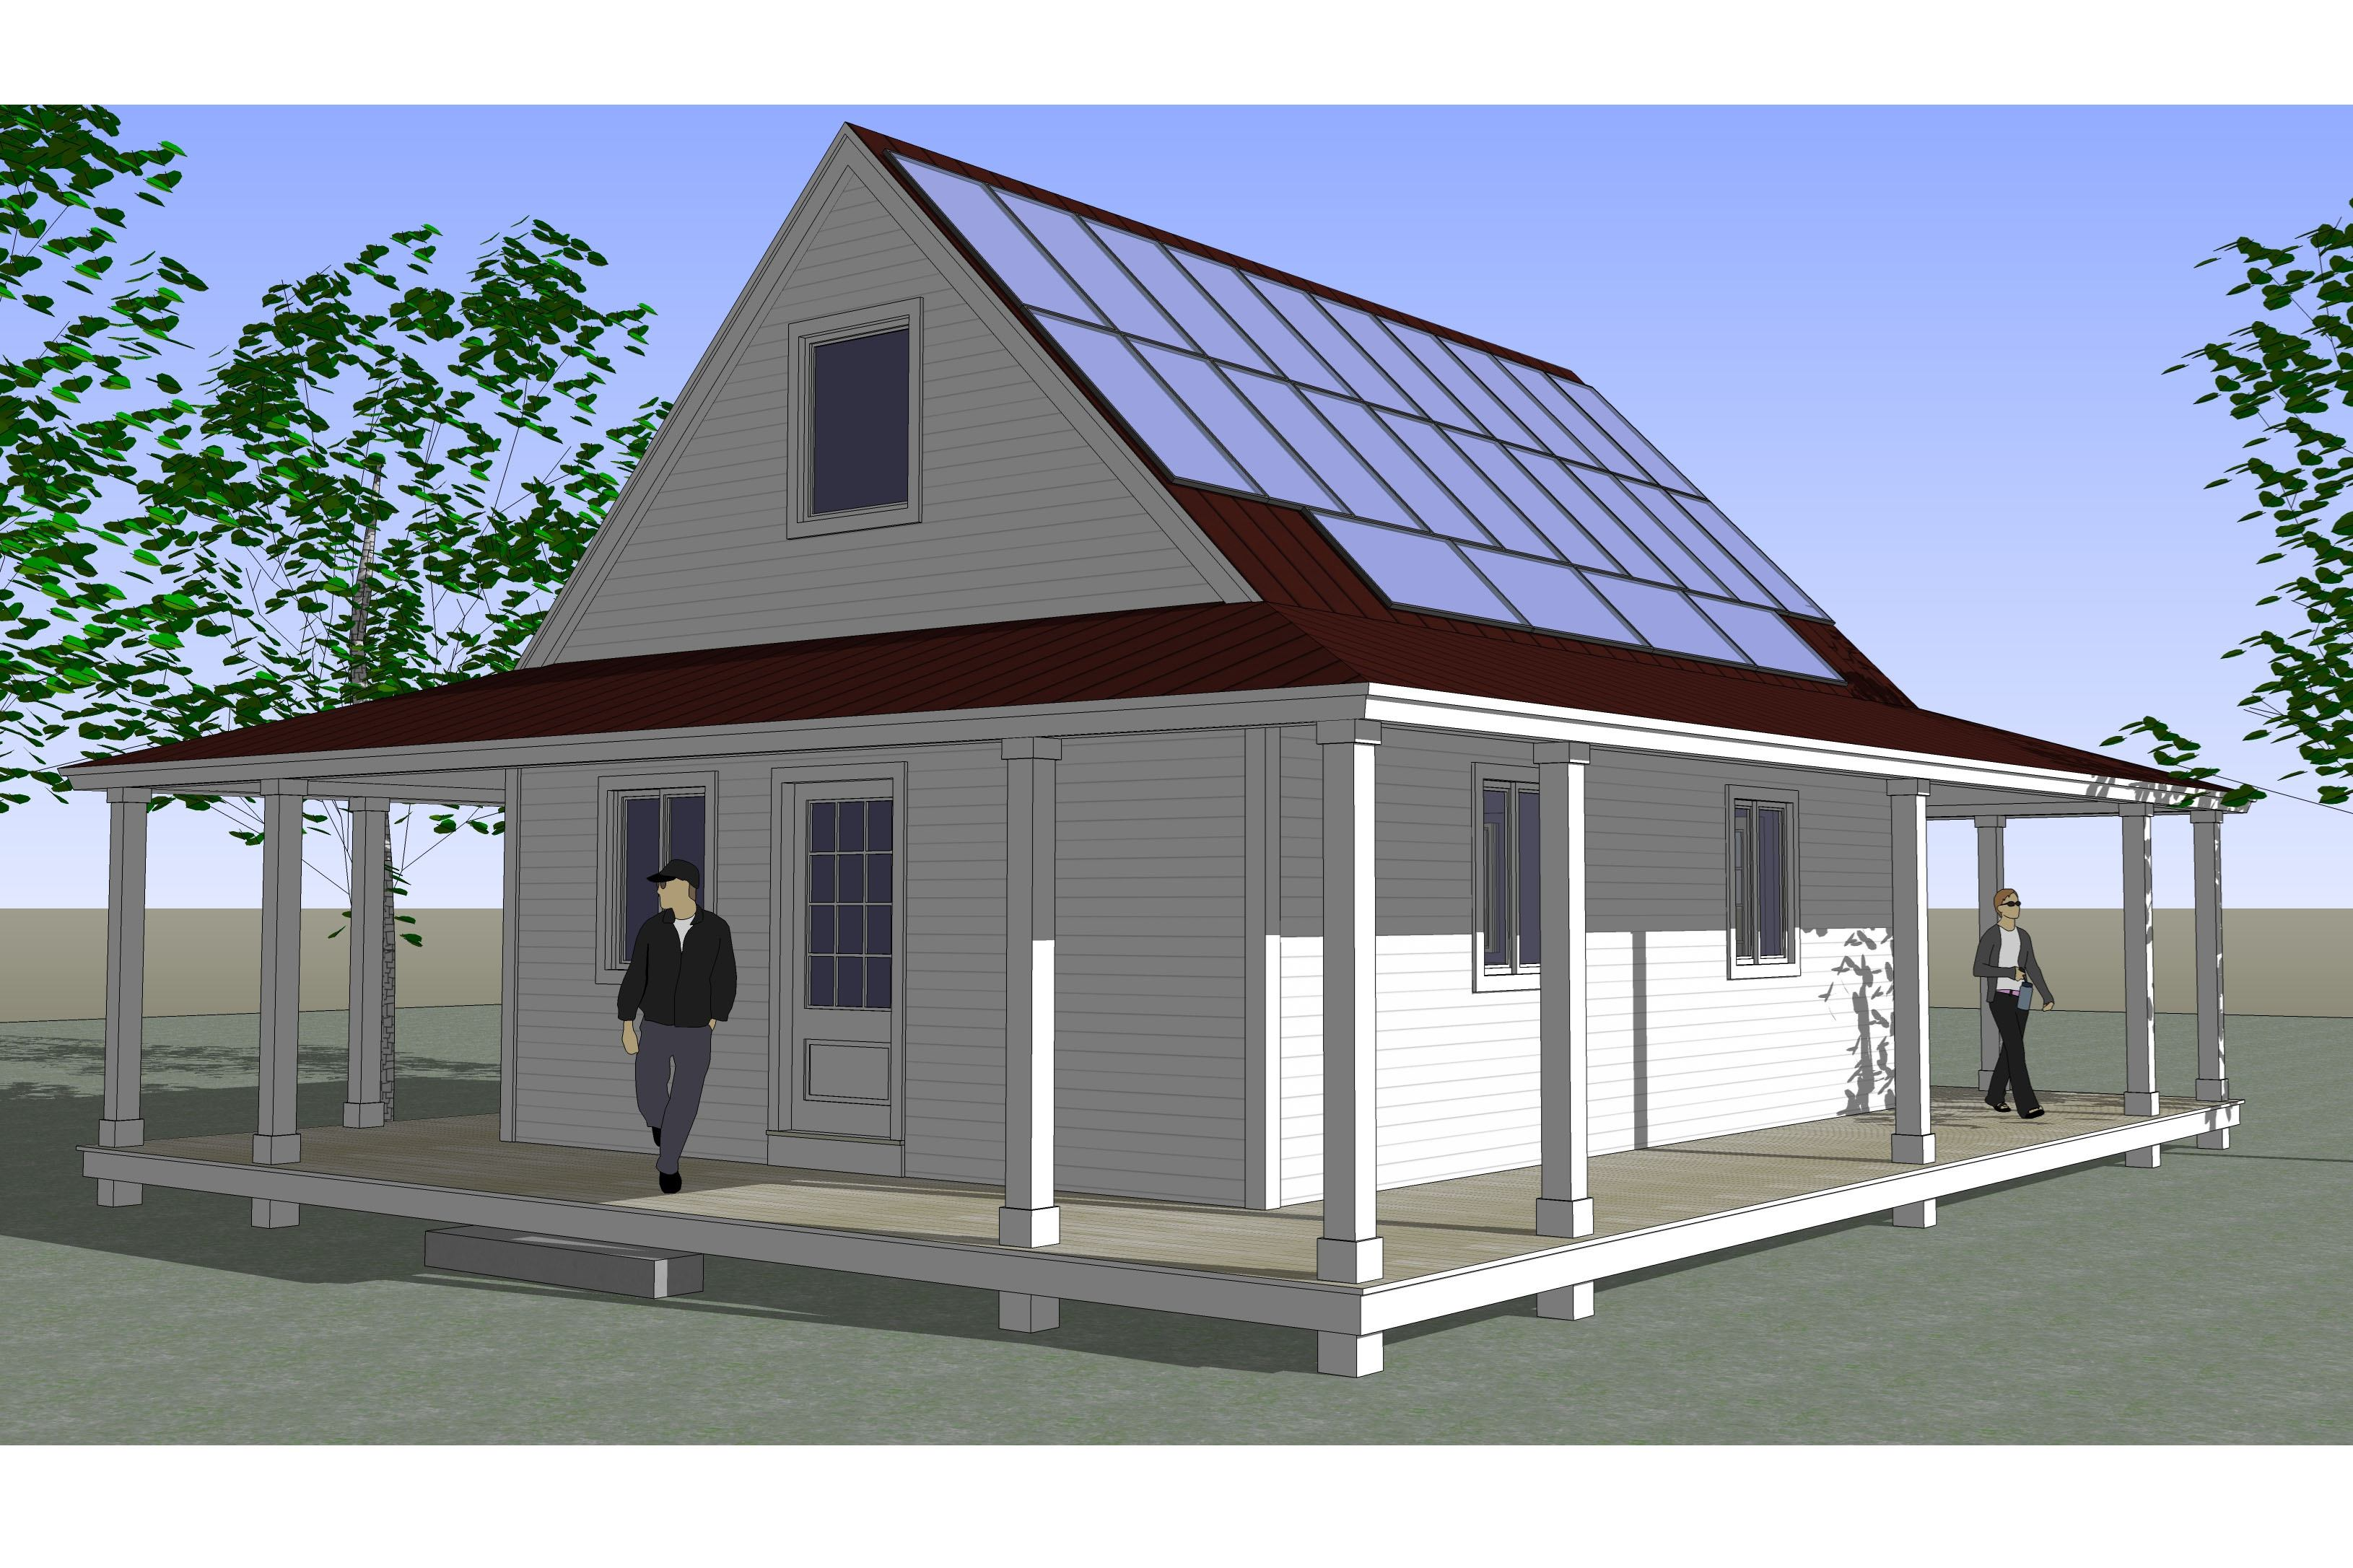 13 simple affordable energy efficient home plans ideas for Energy house